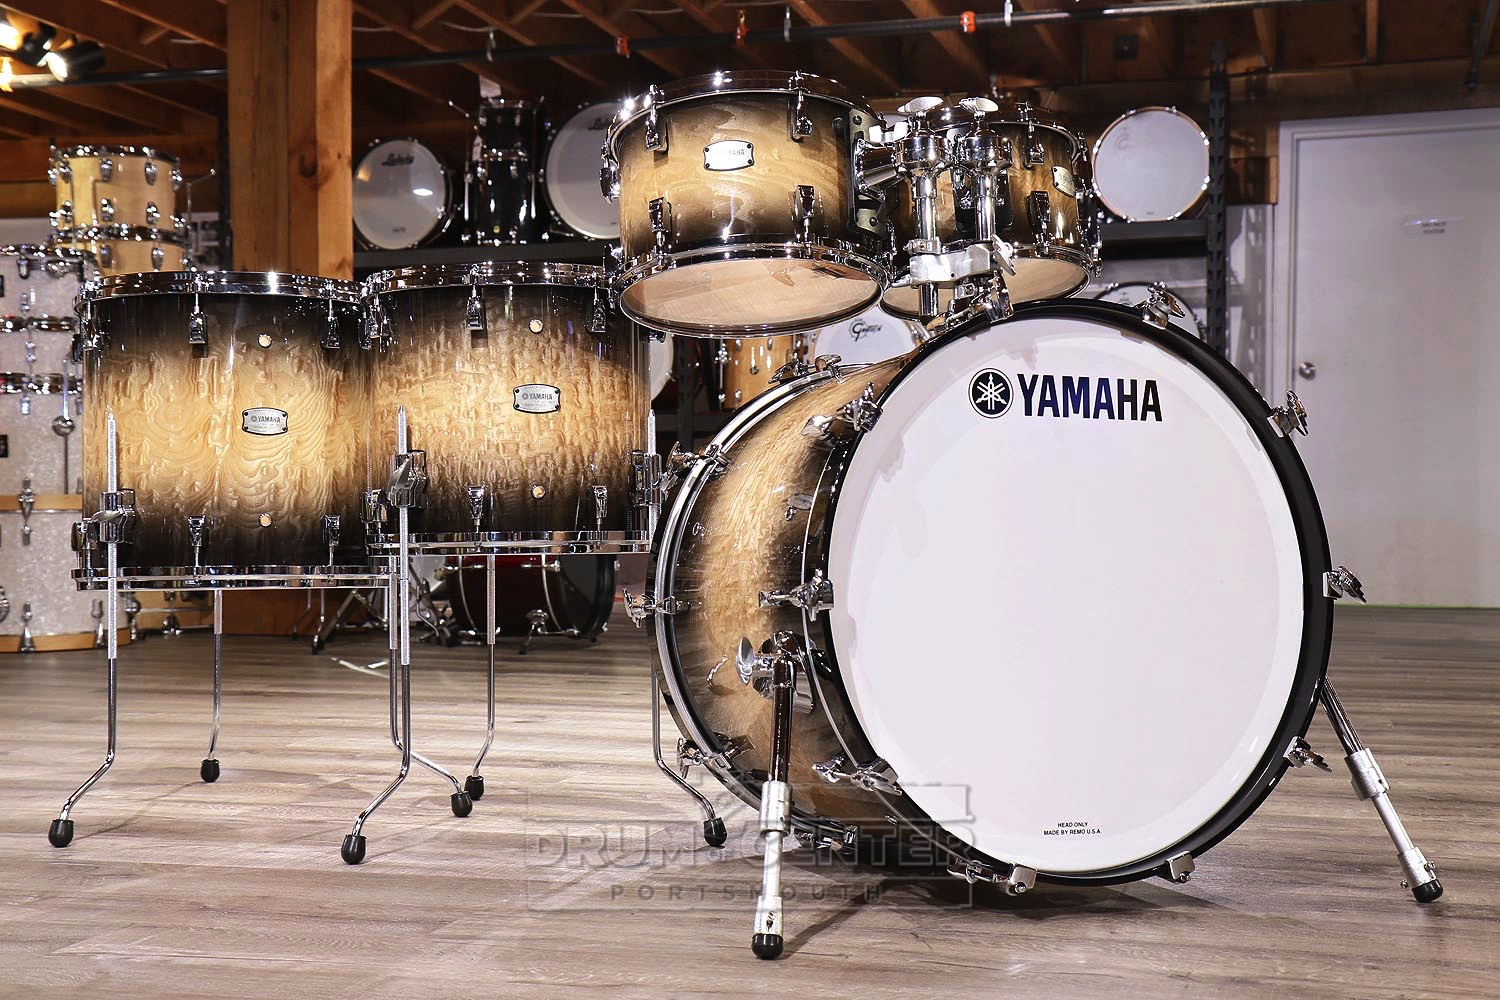 Yamaha drum dating